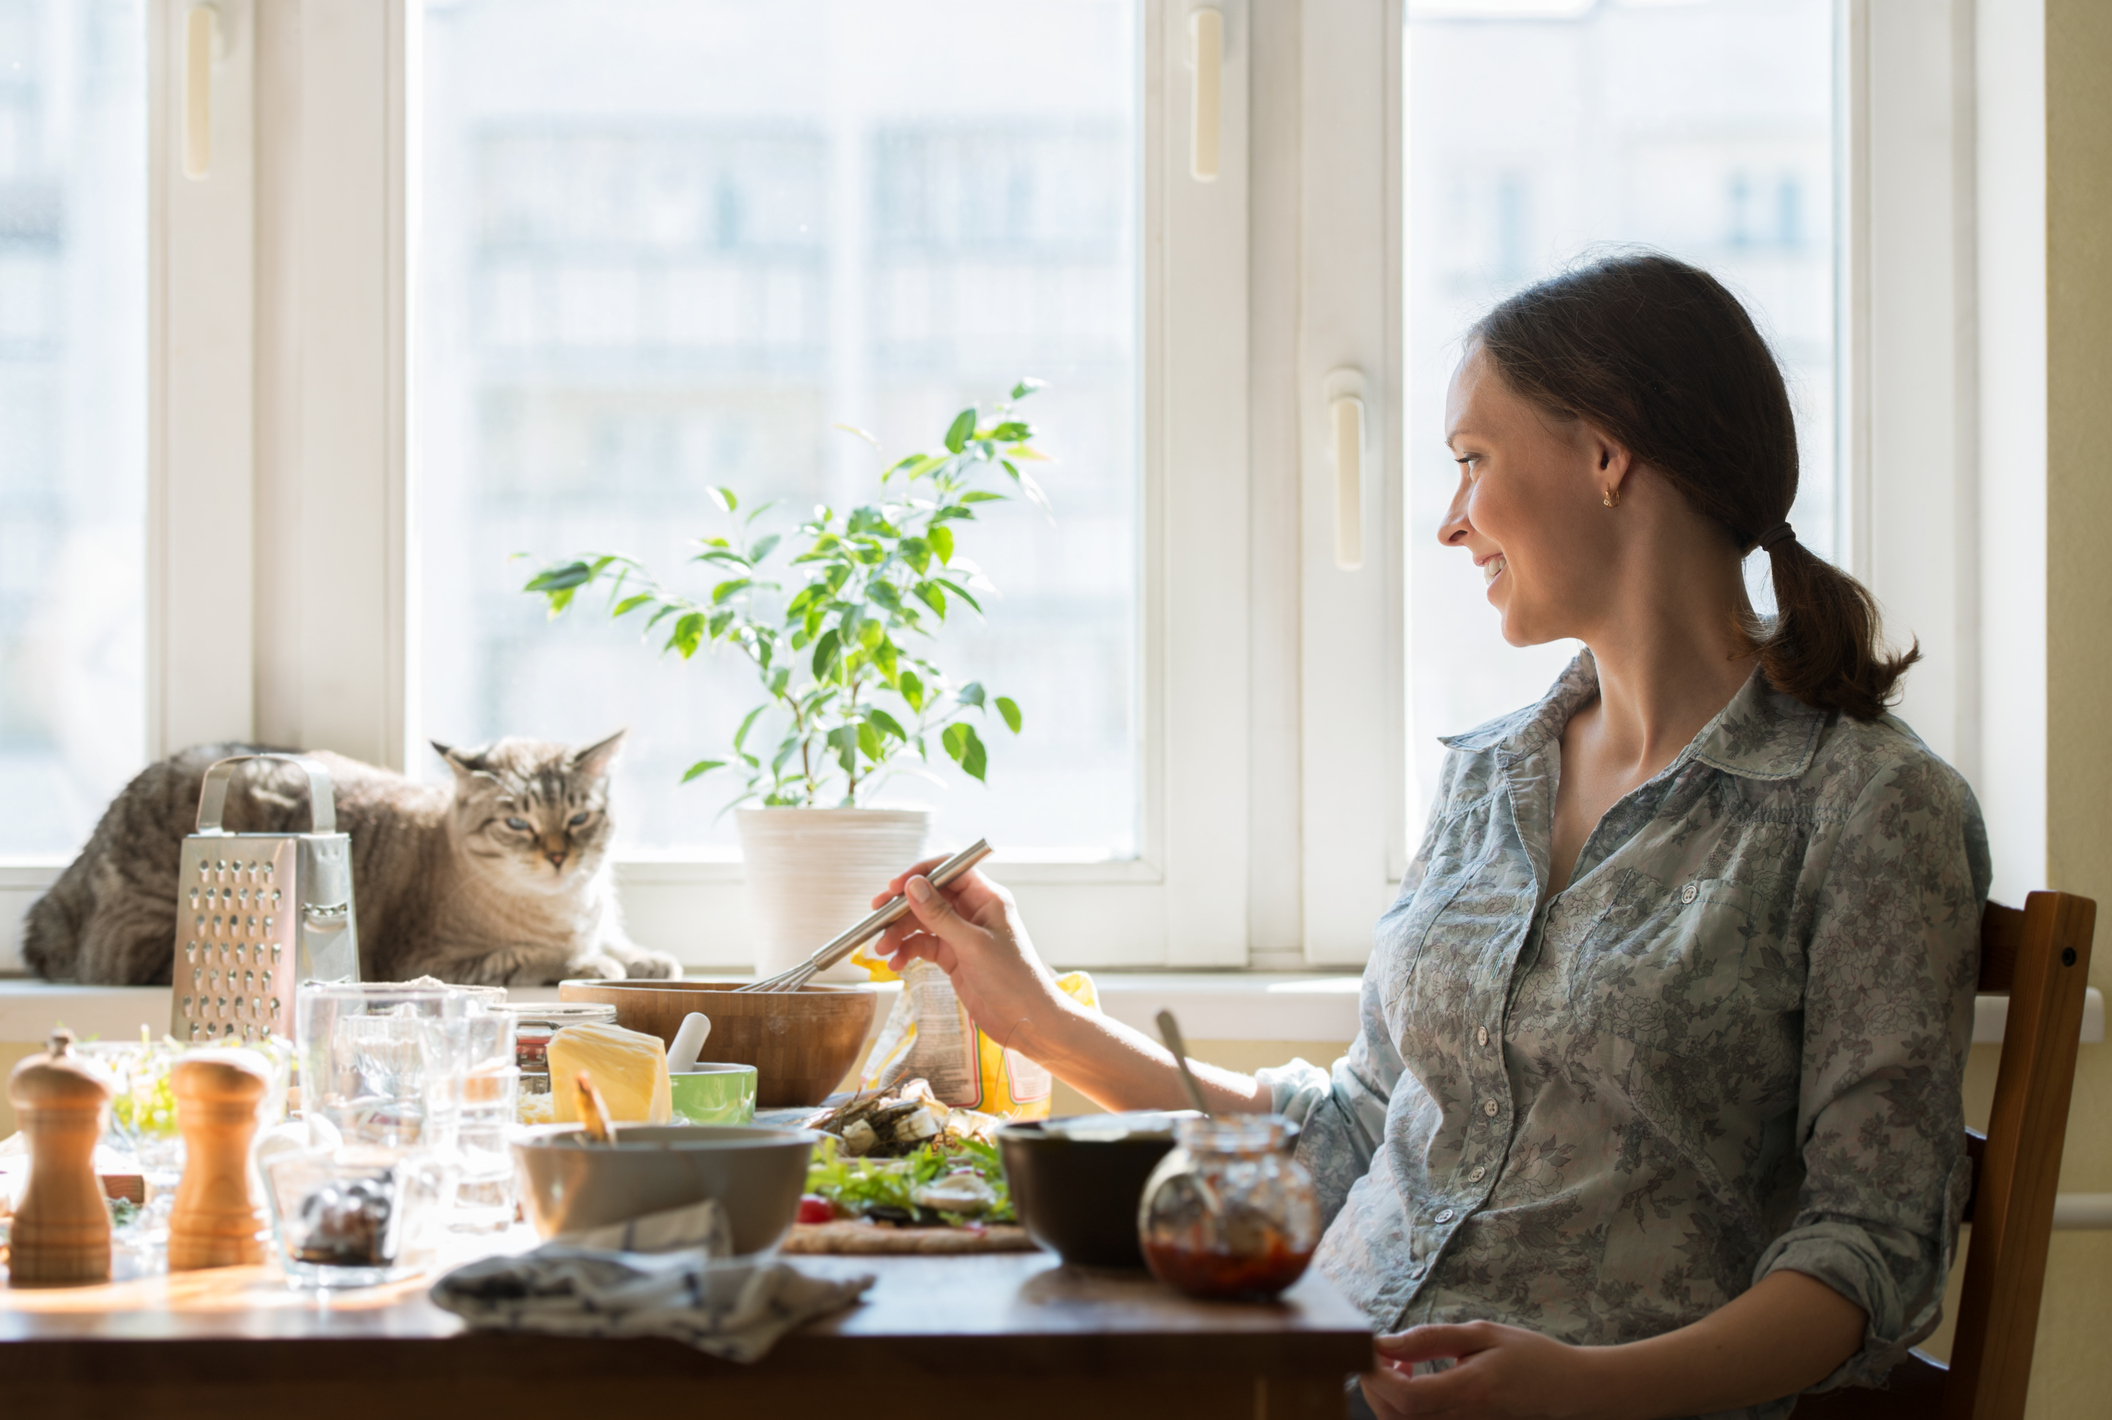 A woman prepares food while a cat sits by the window in front of her (Thinkstock/PA)